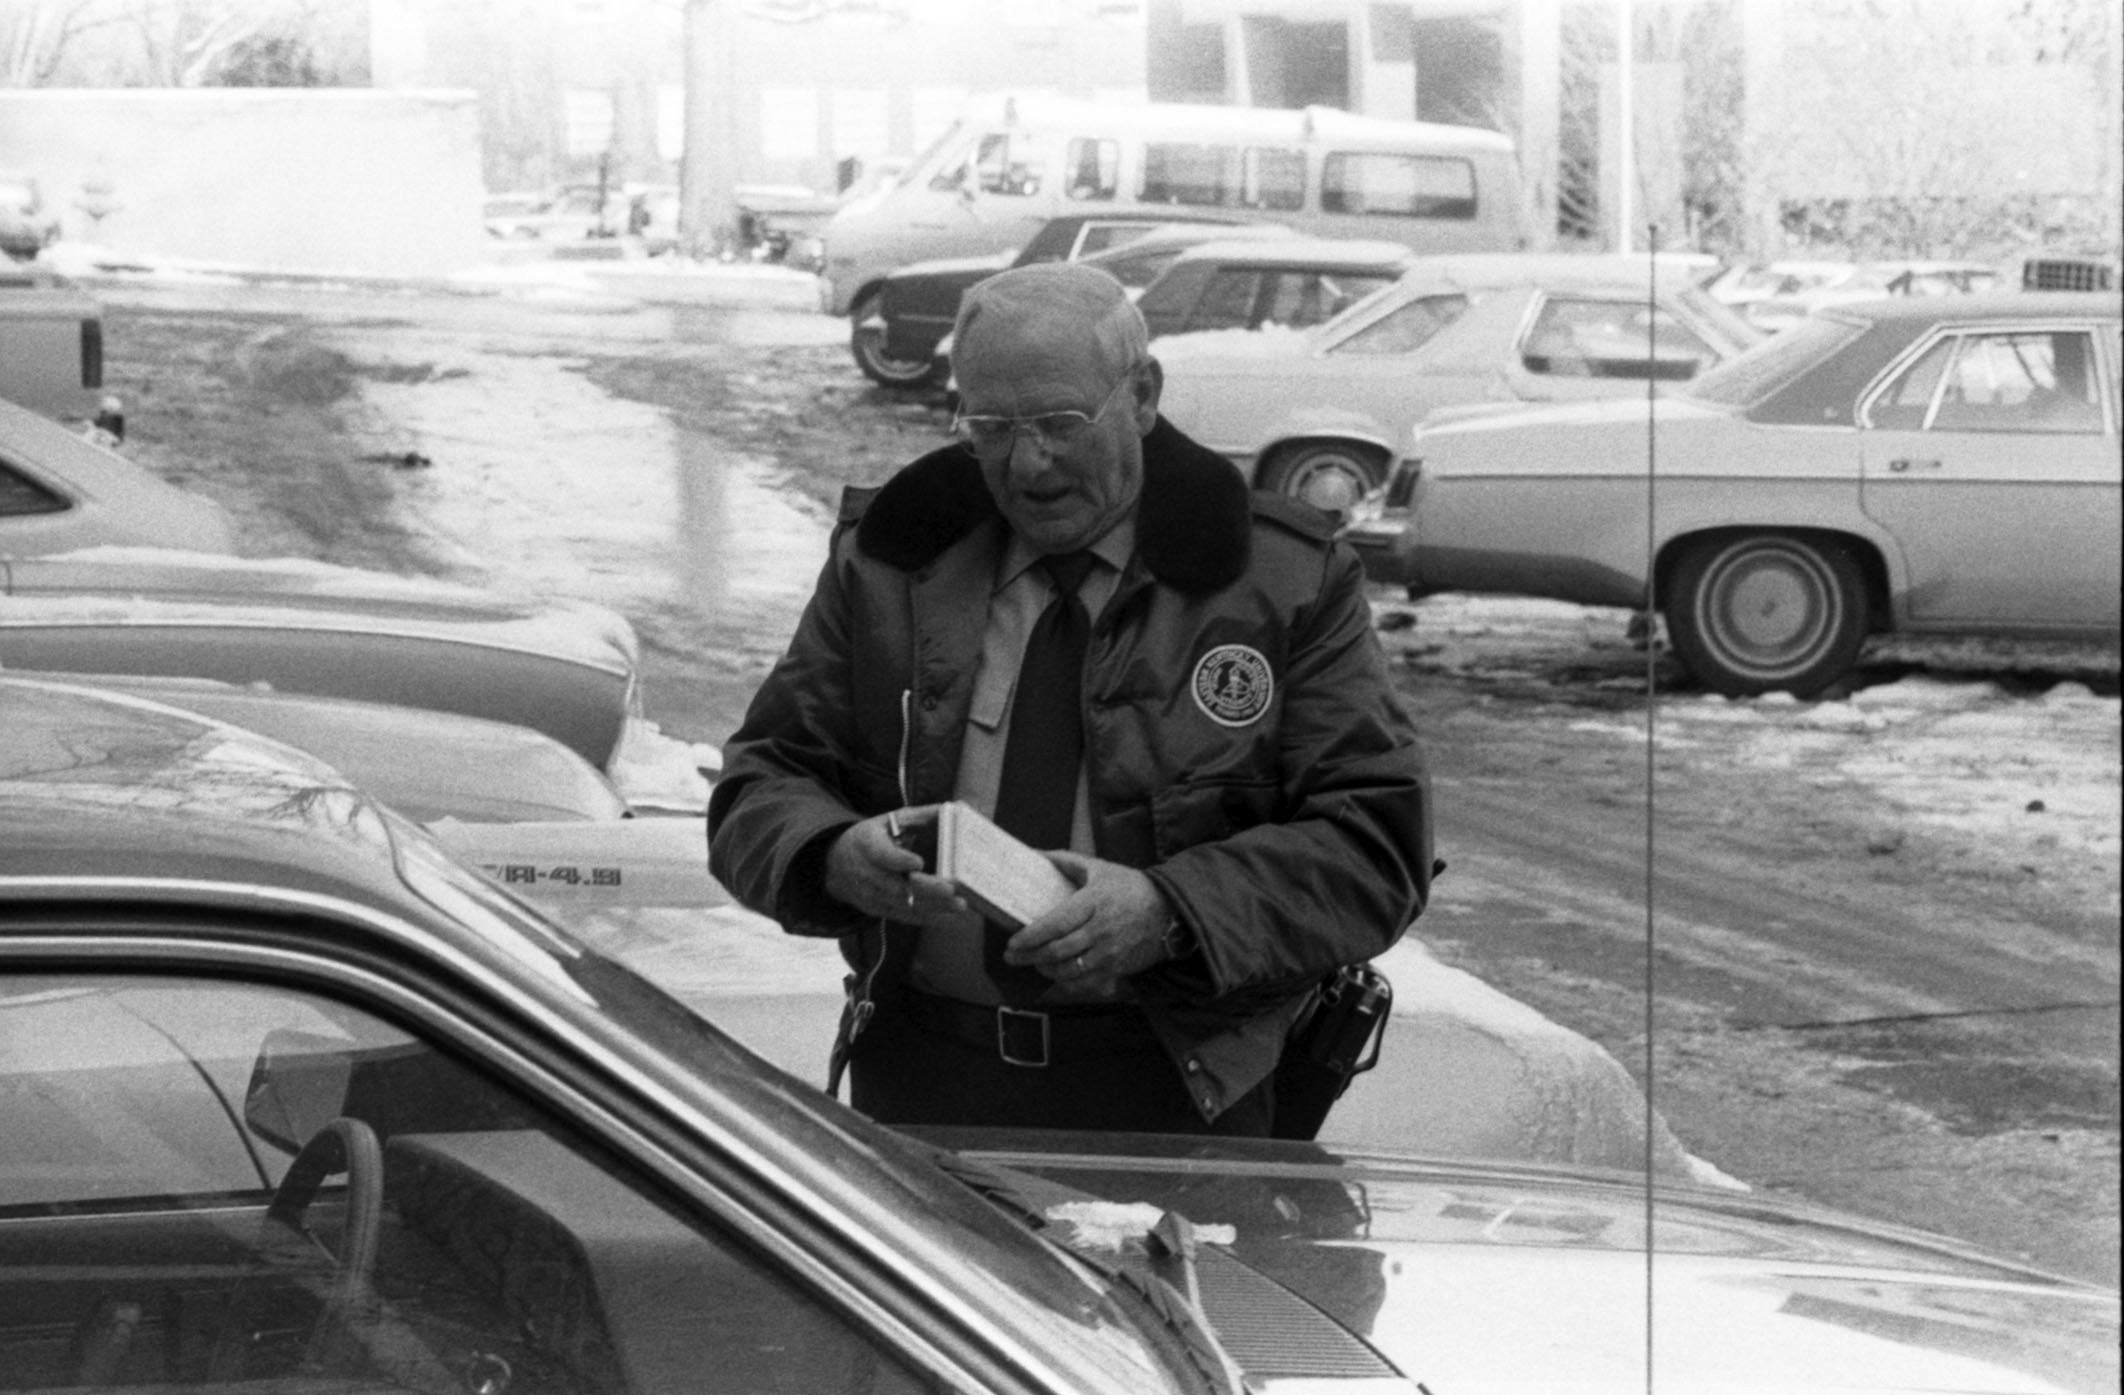 One of EKU's lot guards writing parking tickets, 1984.  EKU Negative Collection.